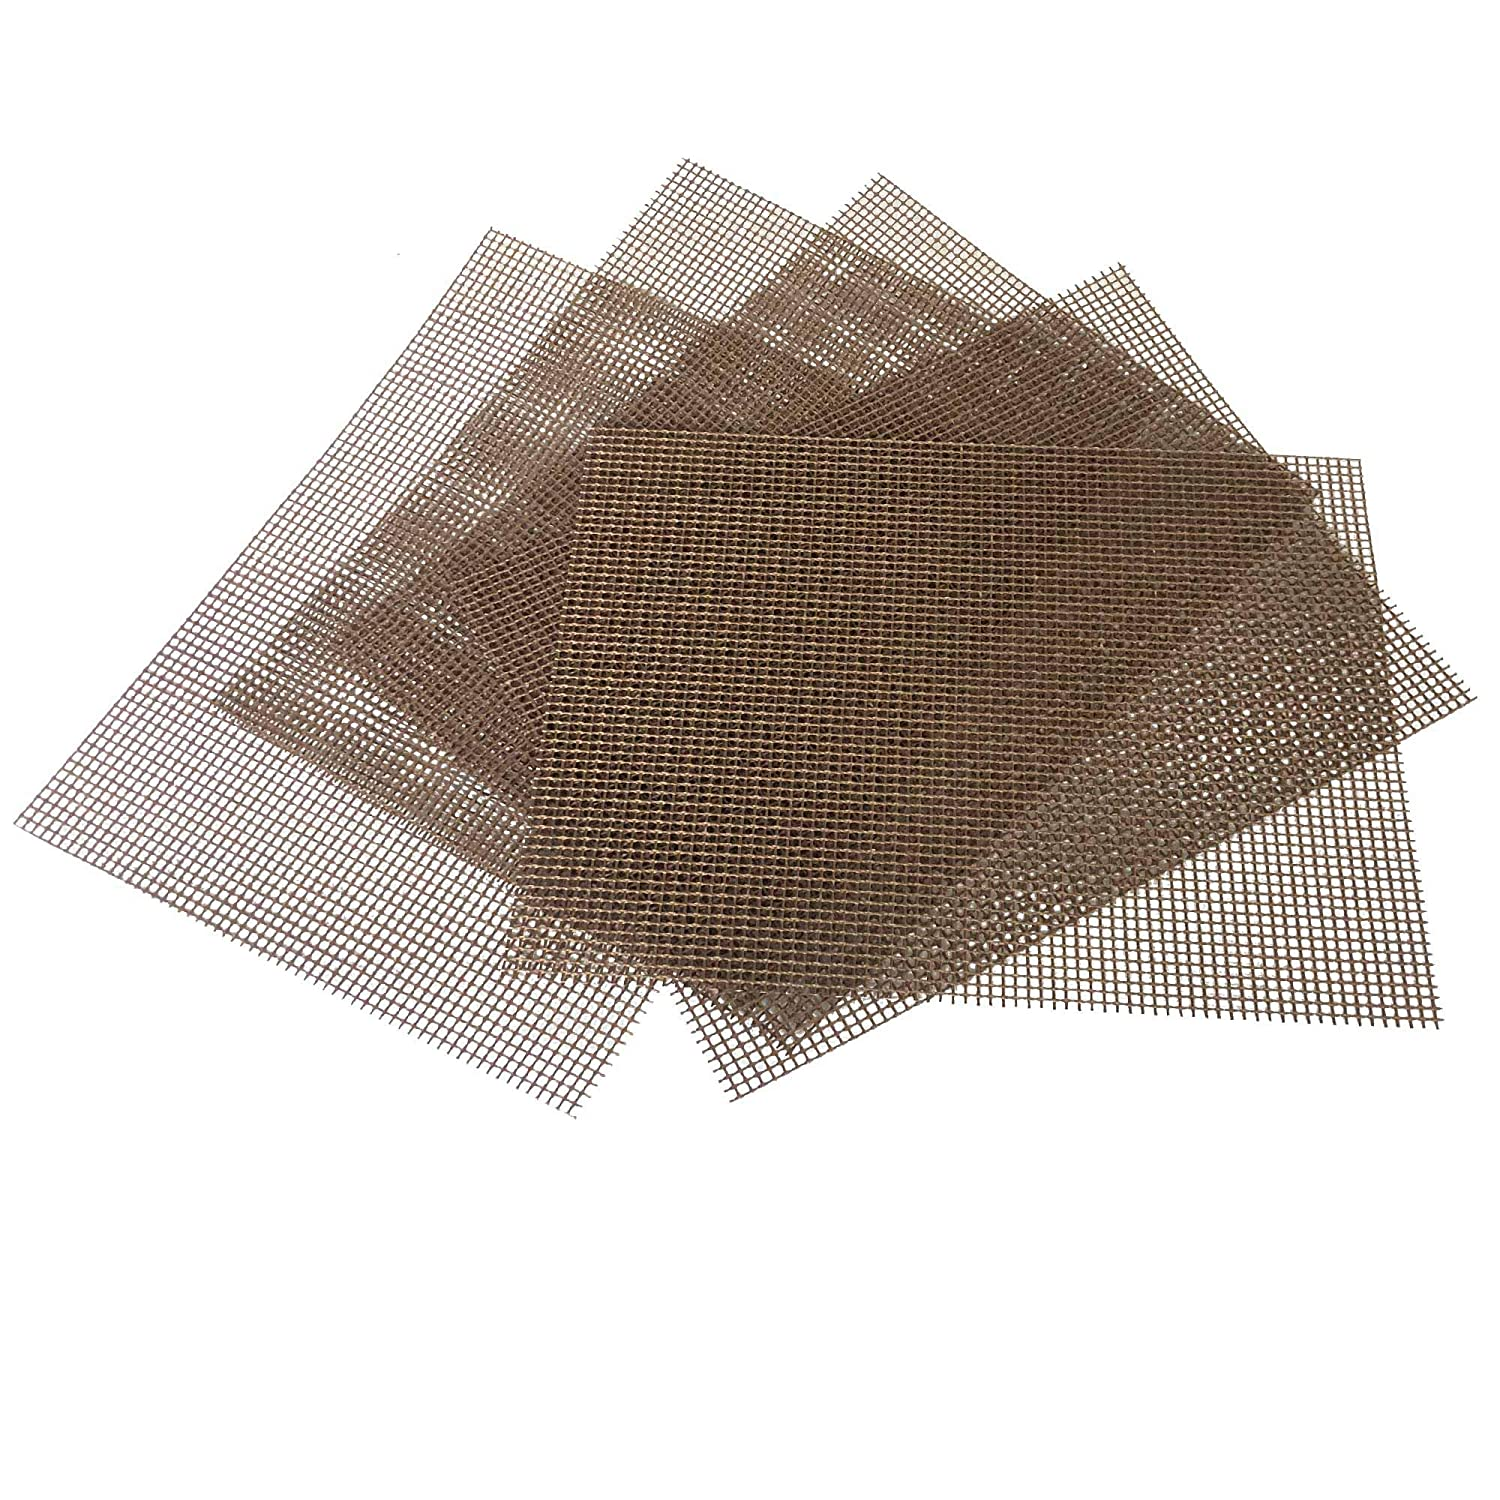 OSVINO Heat Resistant Non Stick FDA-Approved BBQ Grill Mesh Mat Set of 5 Easy to Clean, Beige